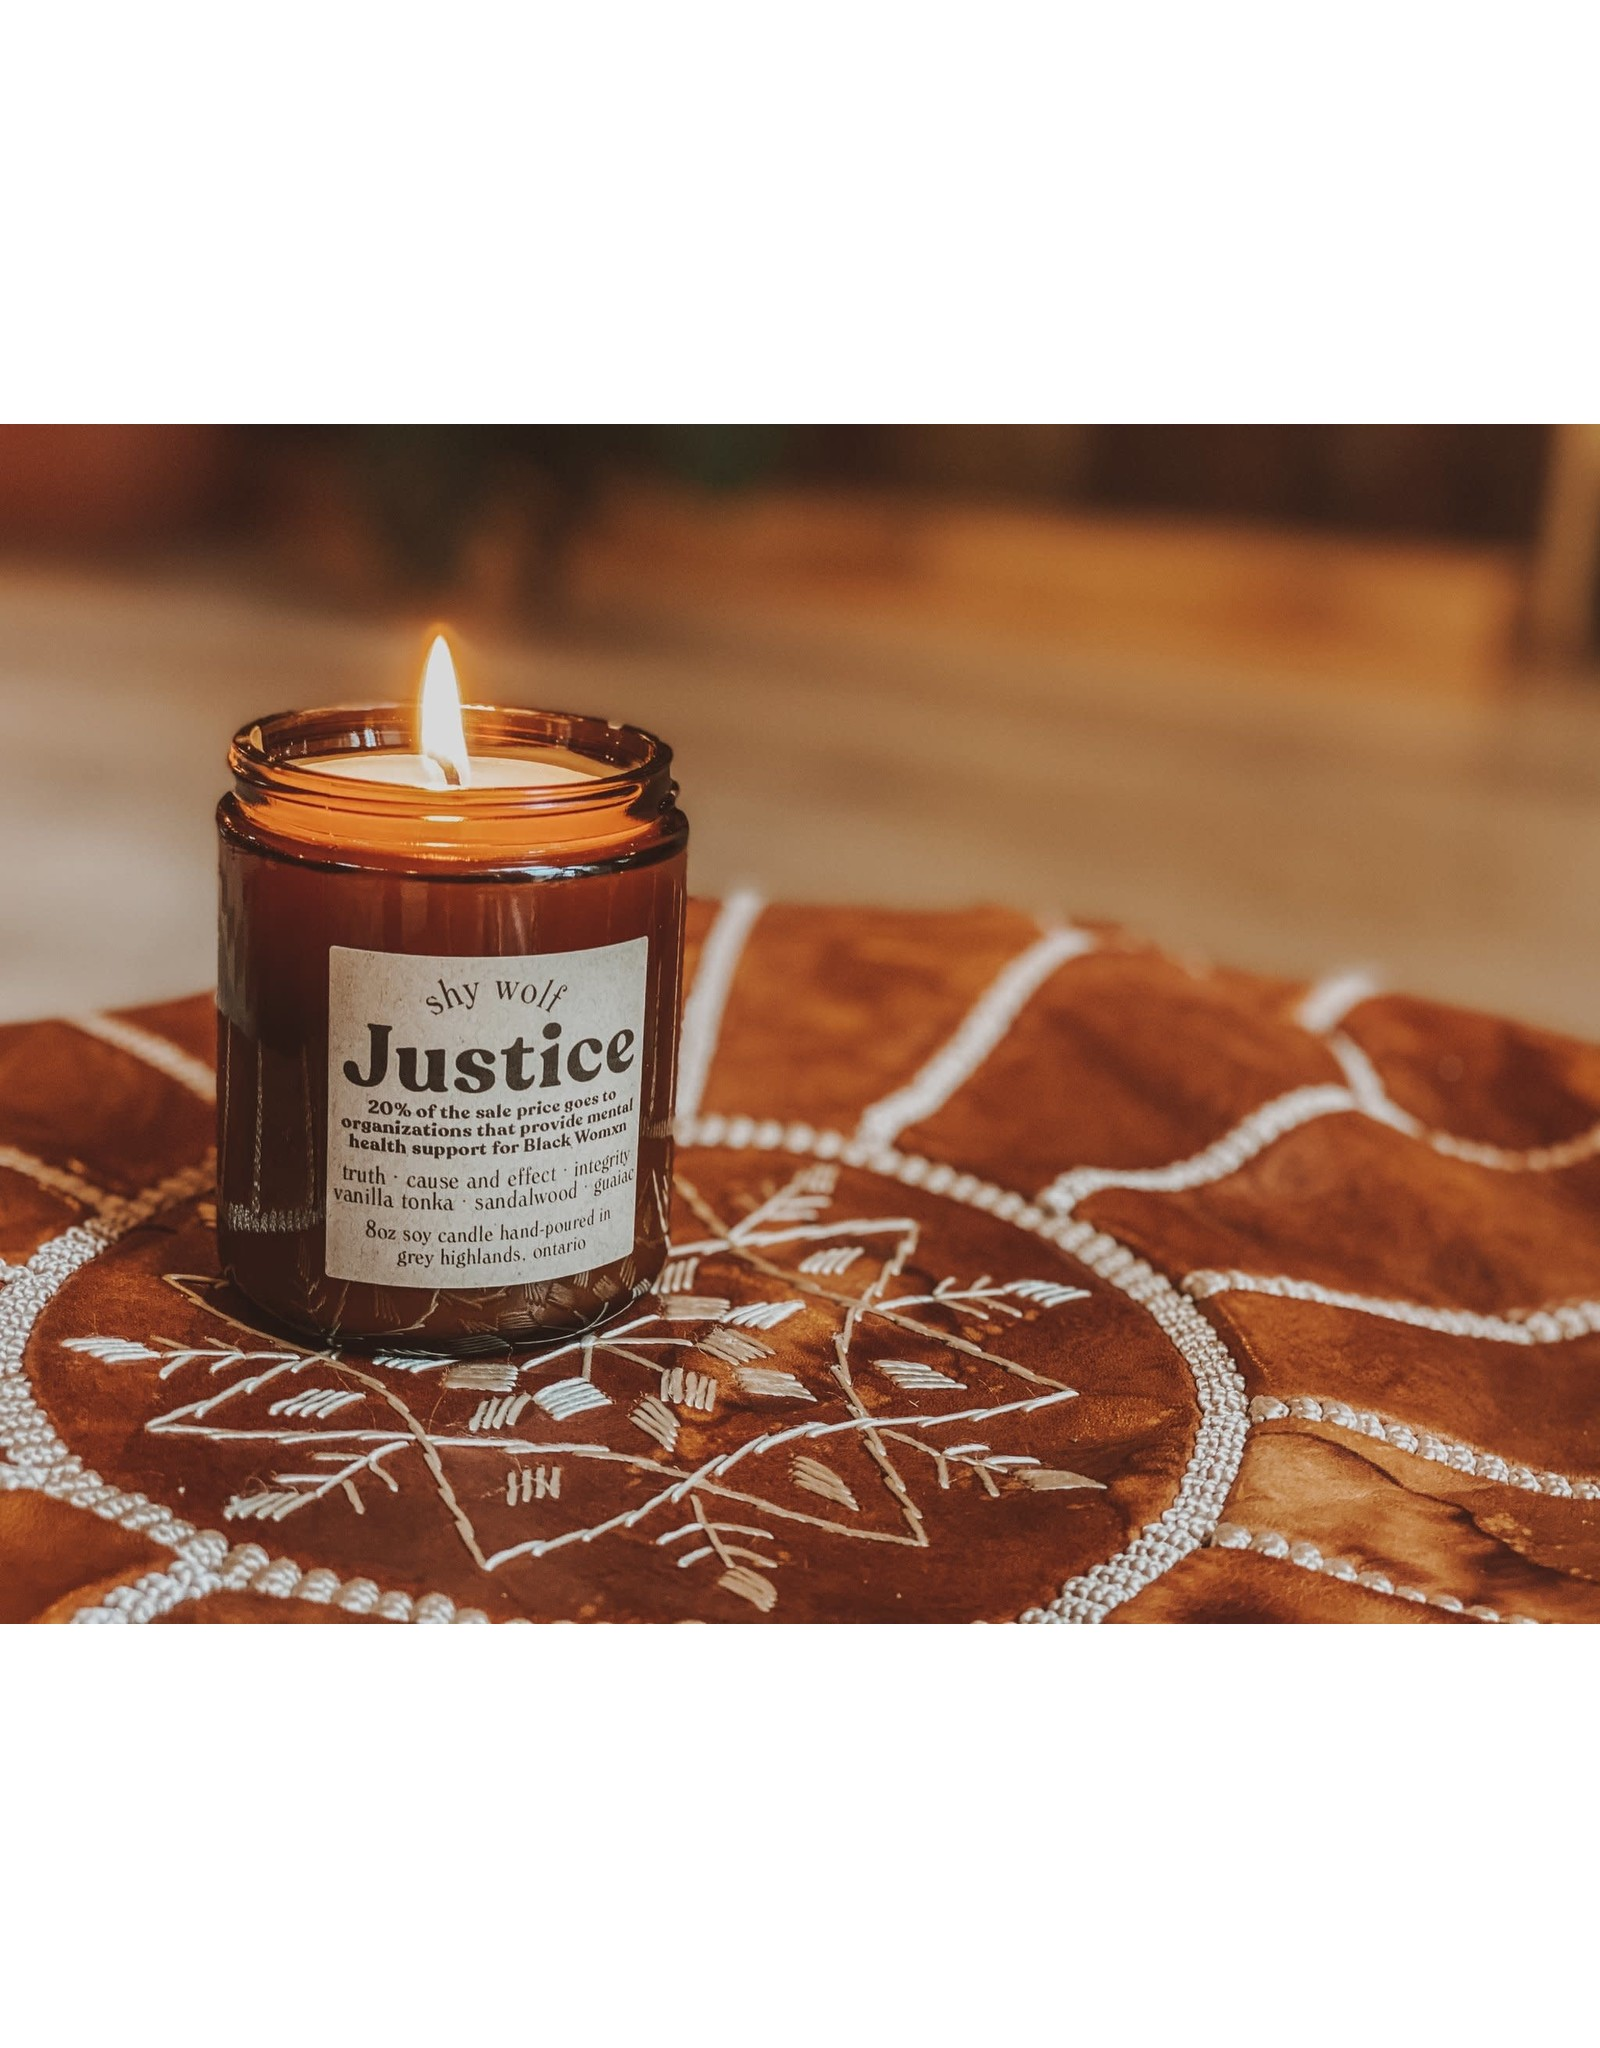 Shy Wolf - Justice Candle - 20% donated - 8 oz